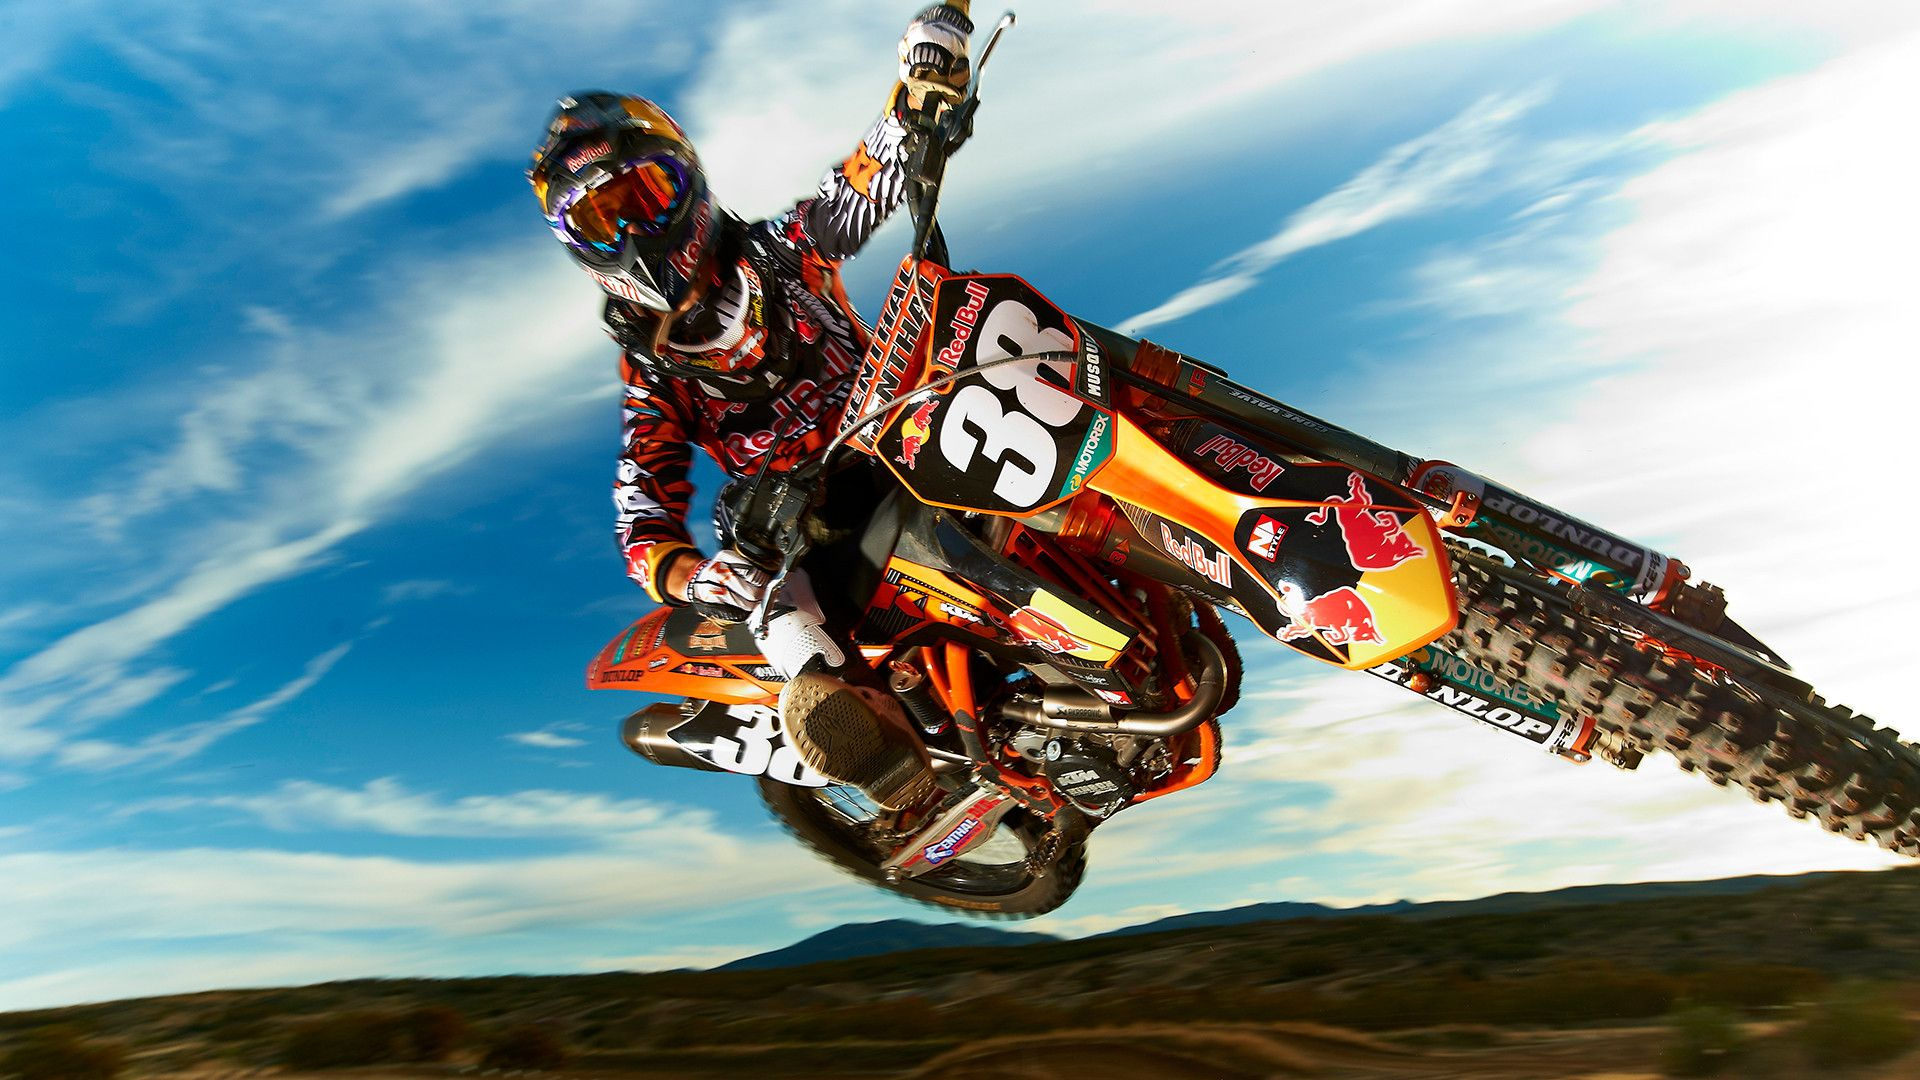 Transworld Motocross Wallpaper Hd Wallpapers Page 0